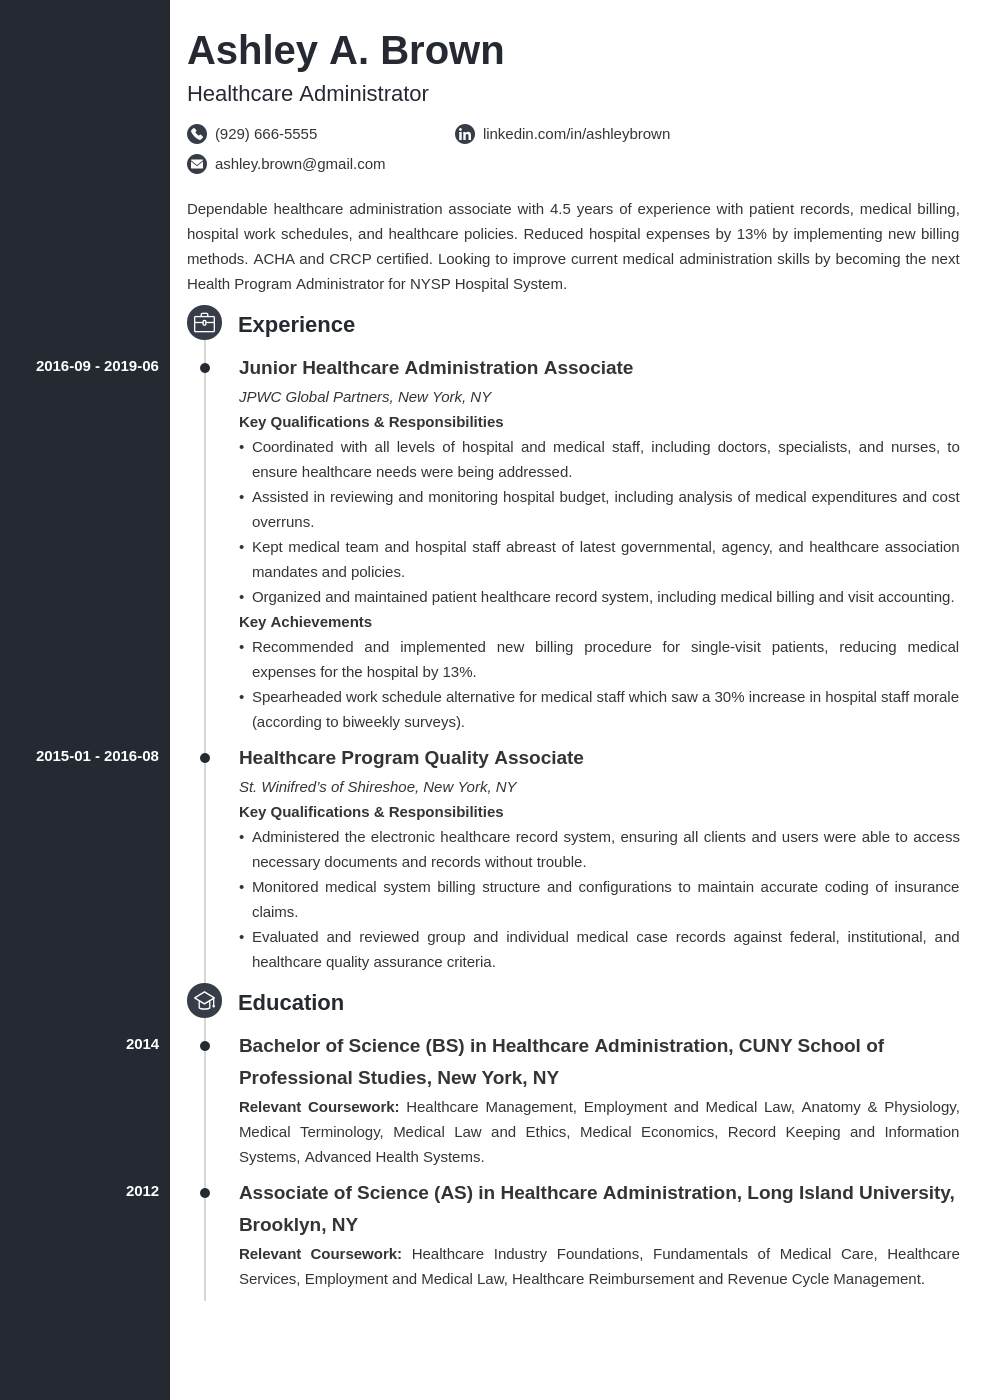 Healthcare Resume Templates from cdn-images.zety.com